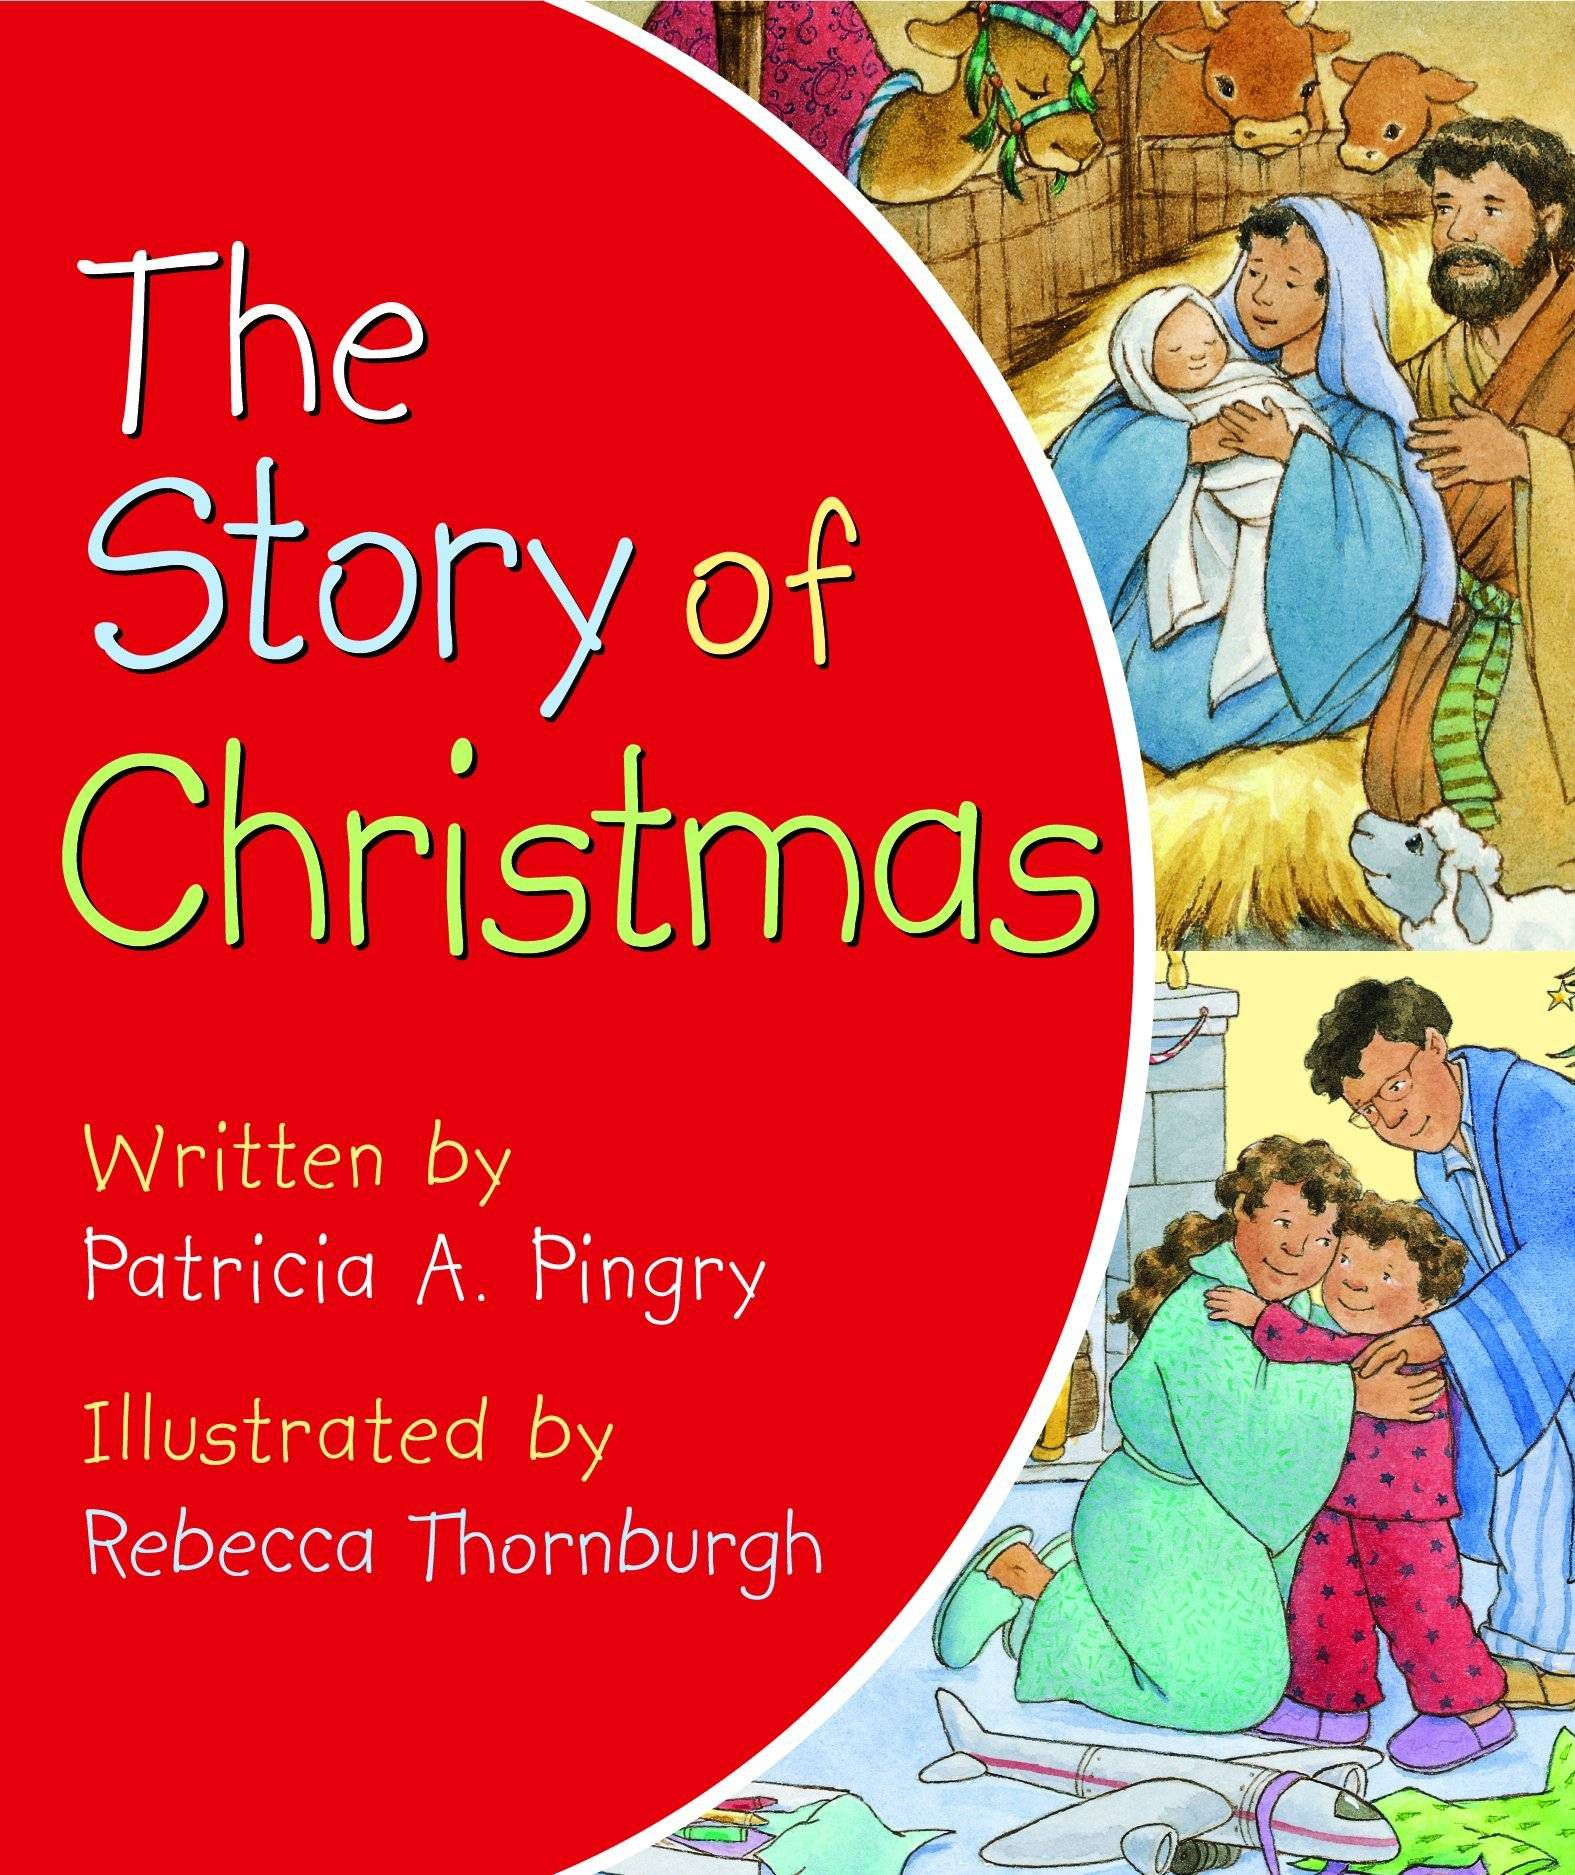 Christmas Books | The Story of Christmas by Patricia A. Pingry